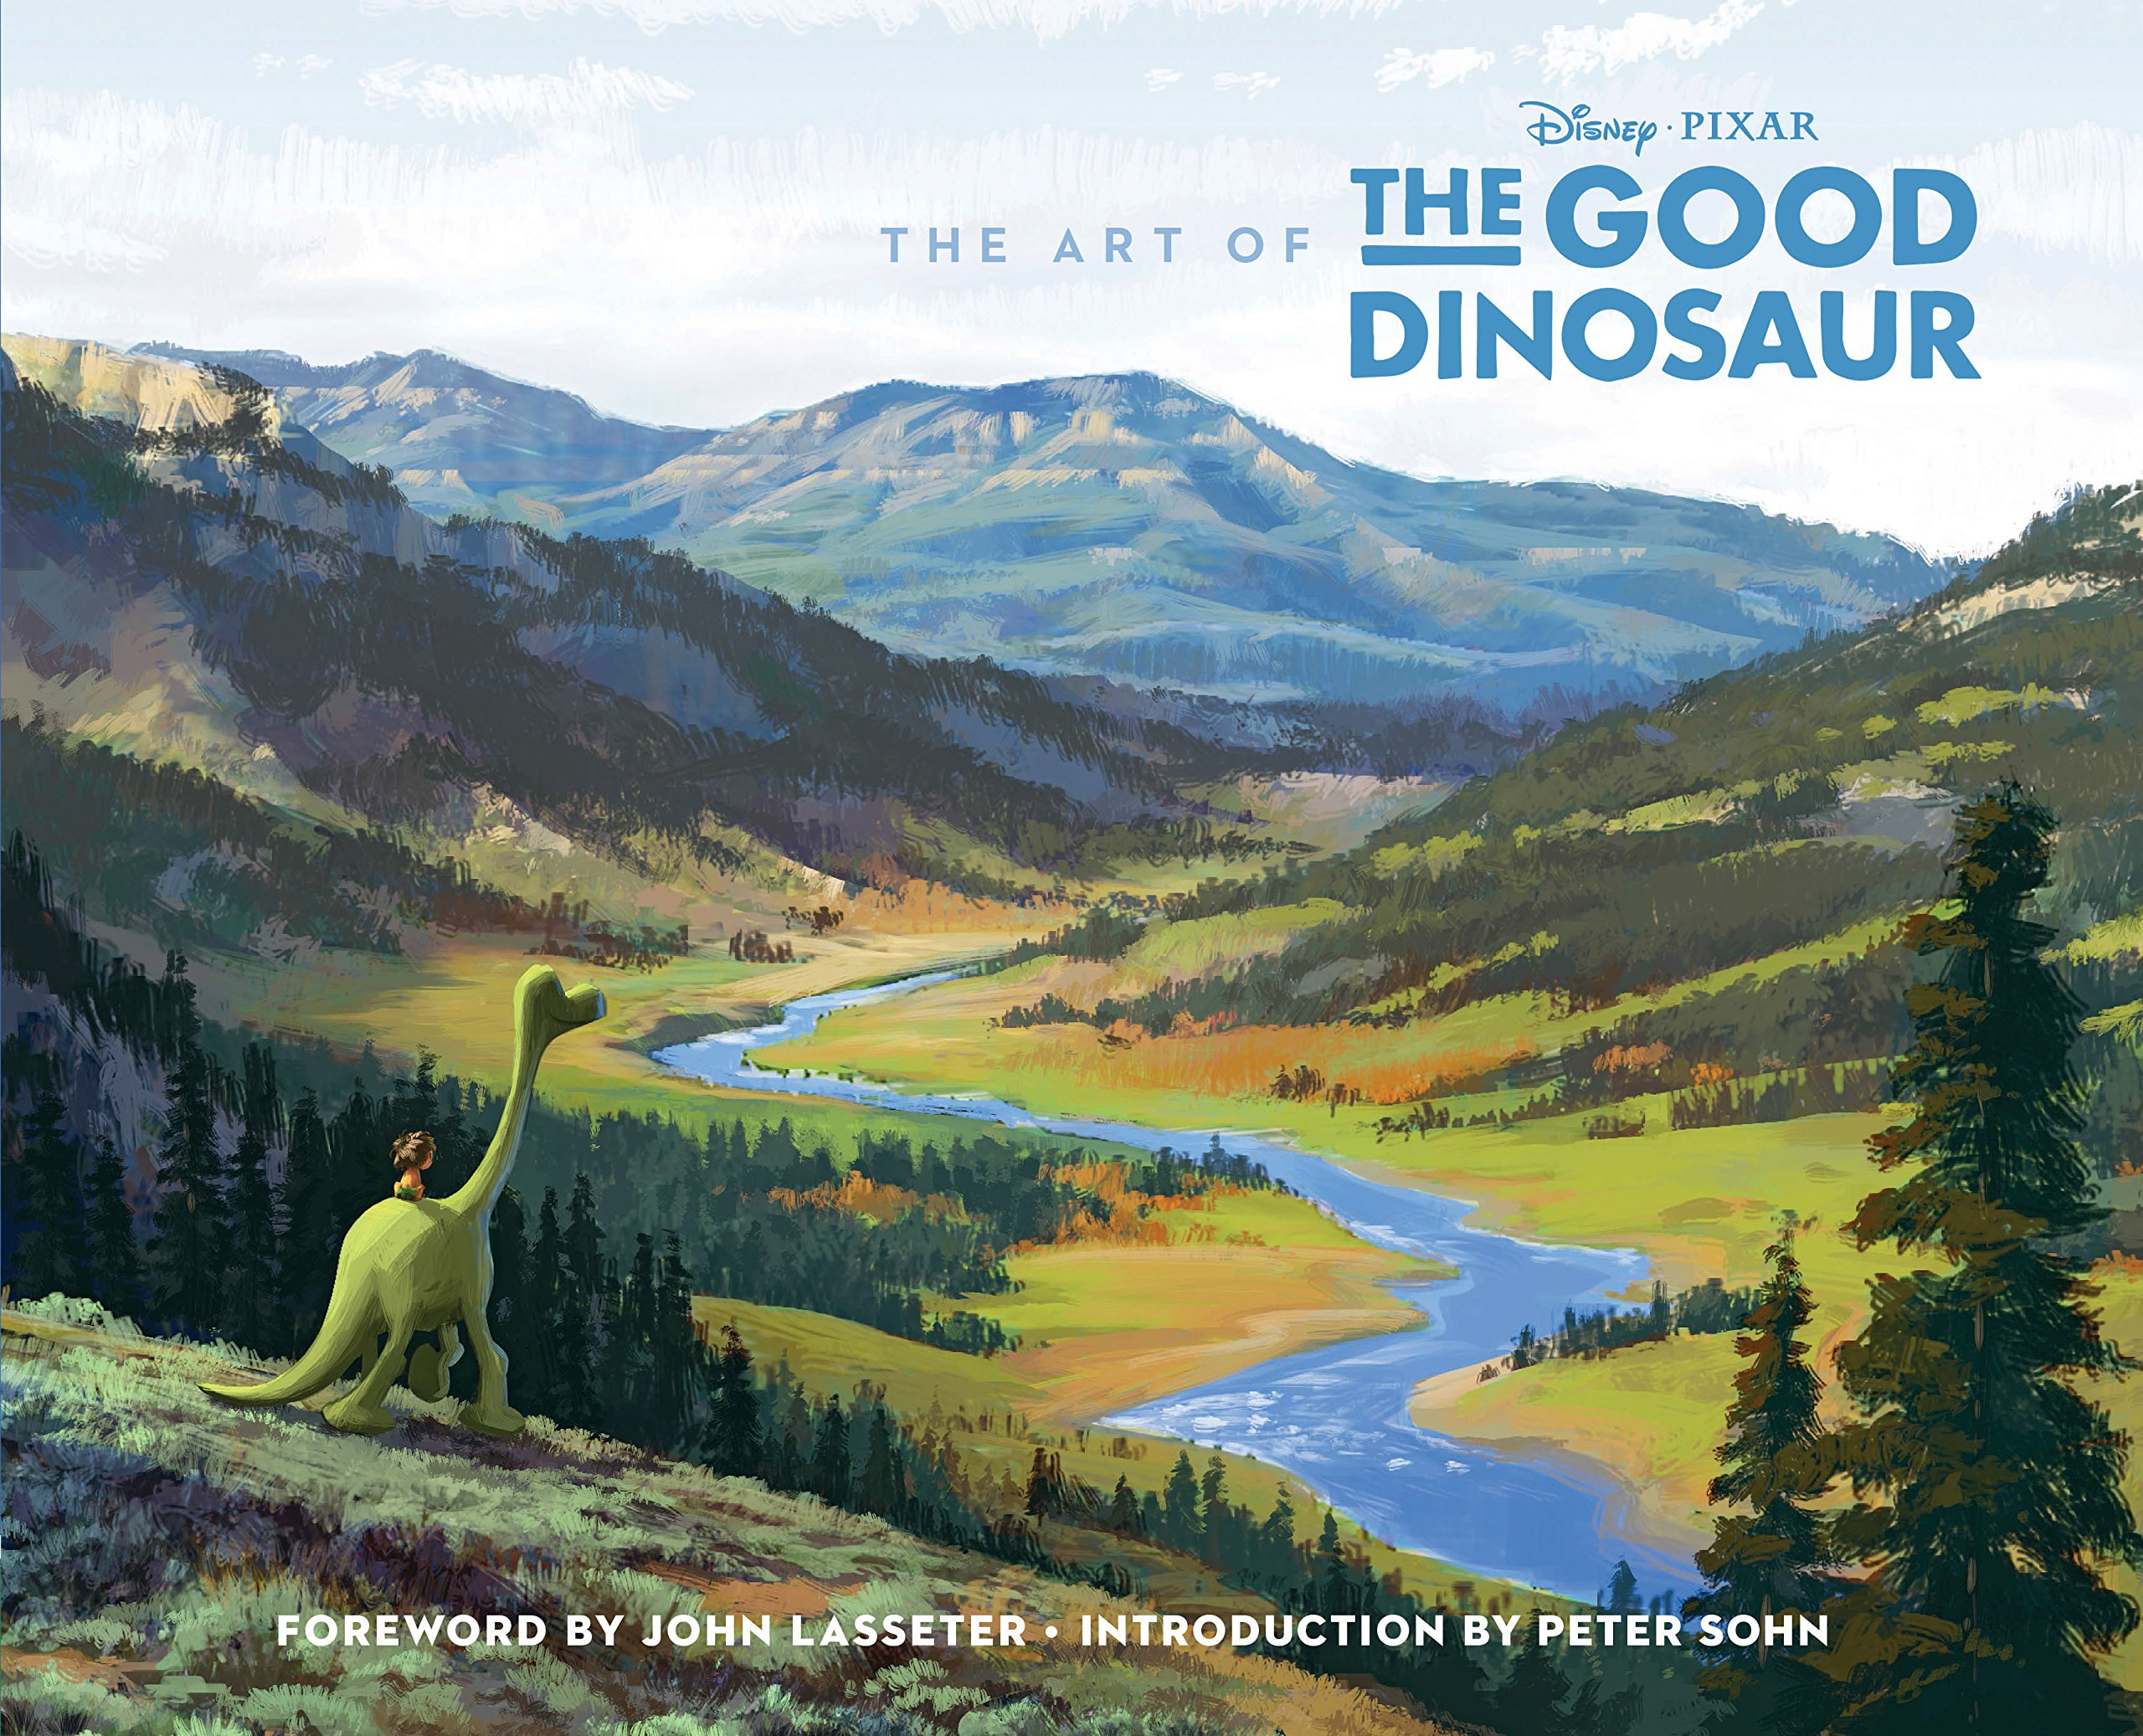 pixar disney livre book the art of the good dinosaur voyage arlo